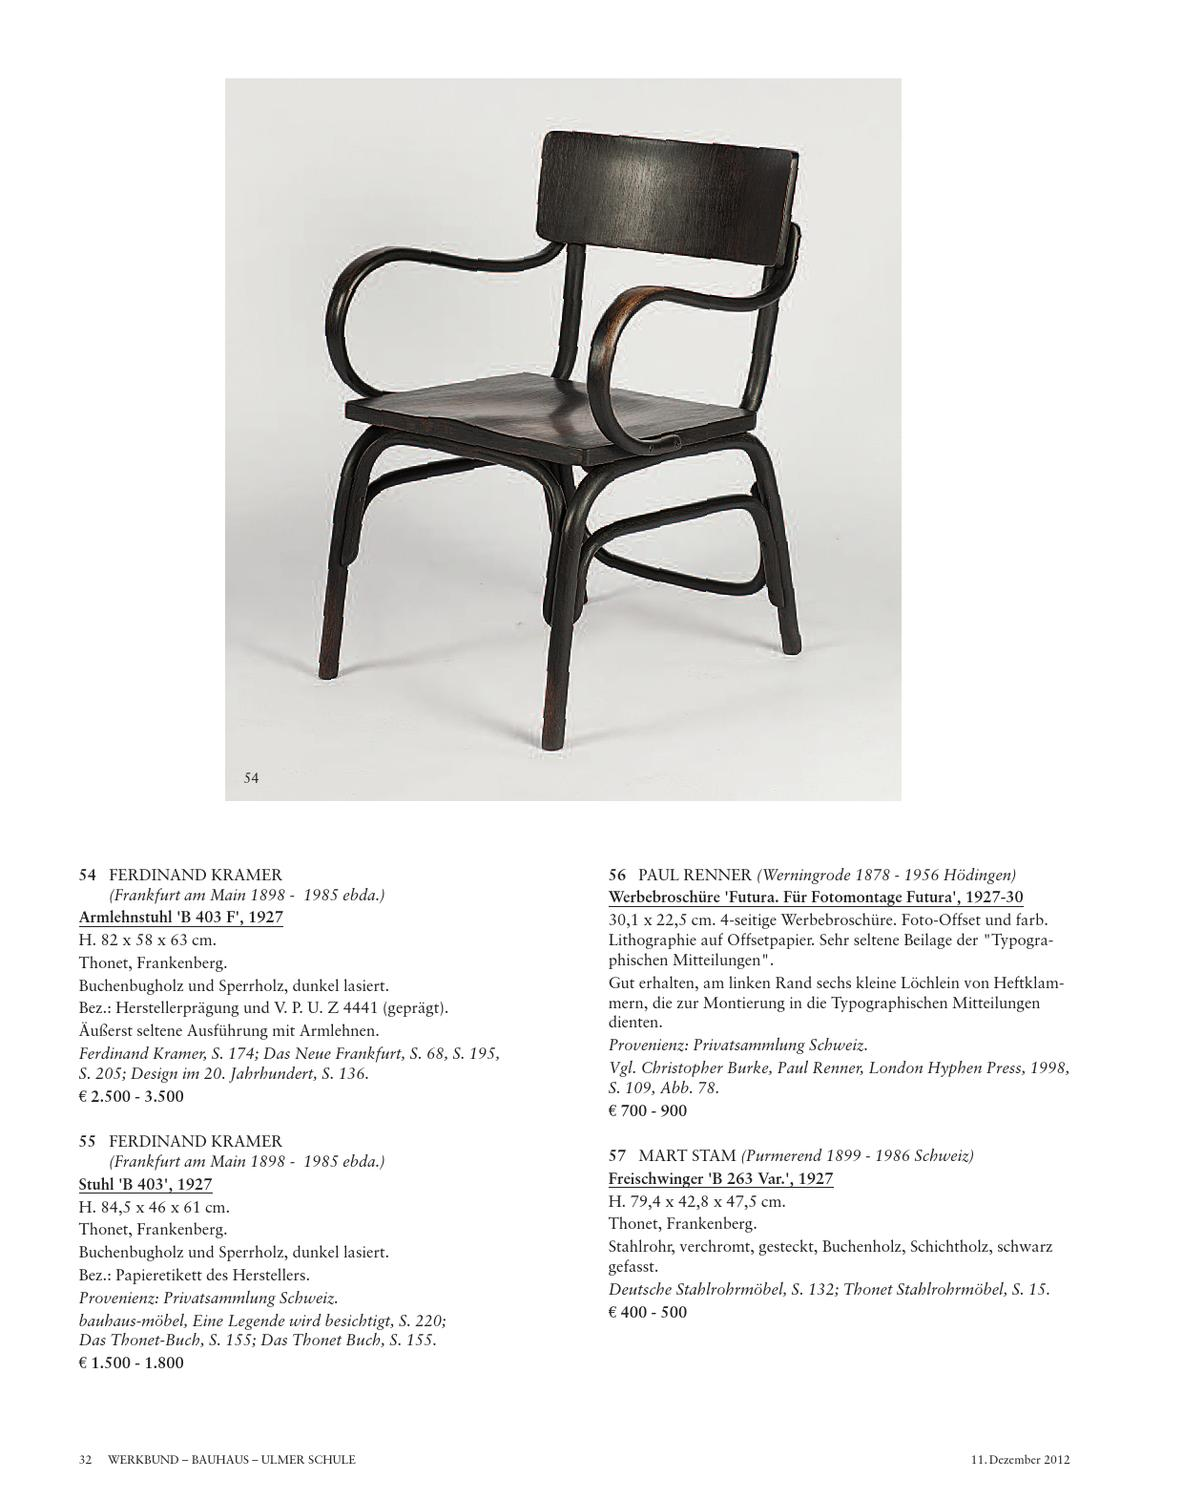 Bauhaus Buchenholz Auction 106b Catalogue Quittenbaum Art Auctions By